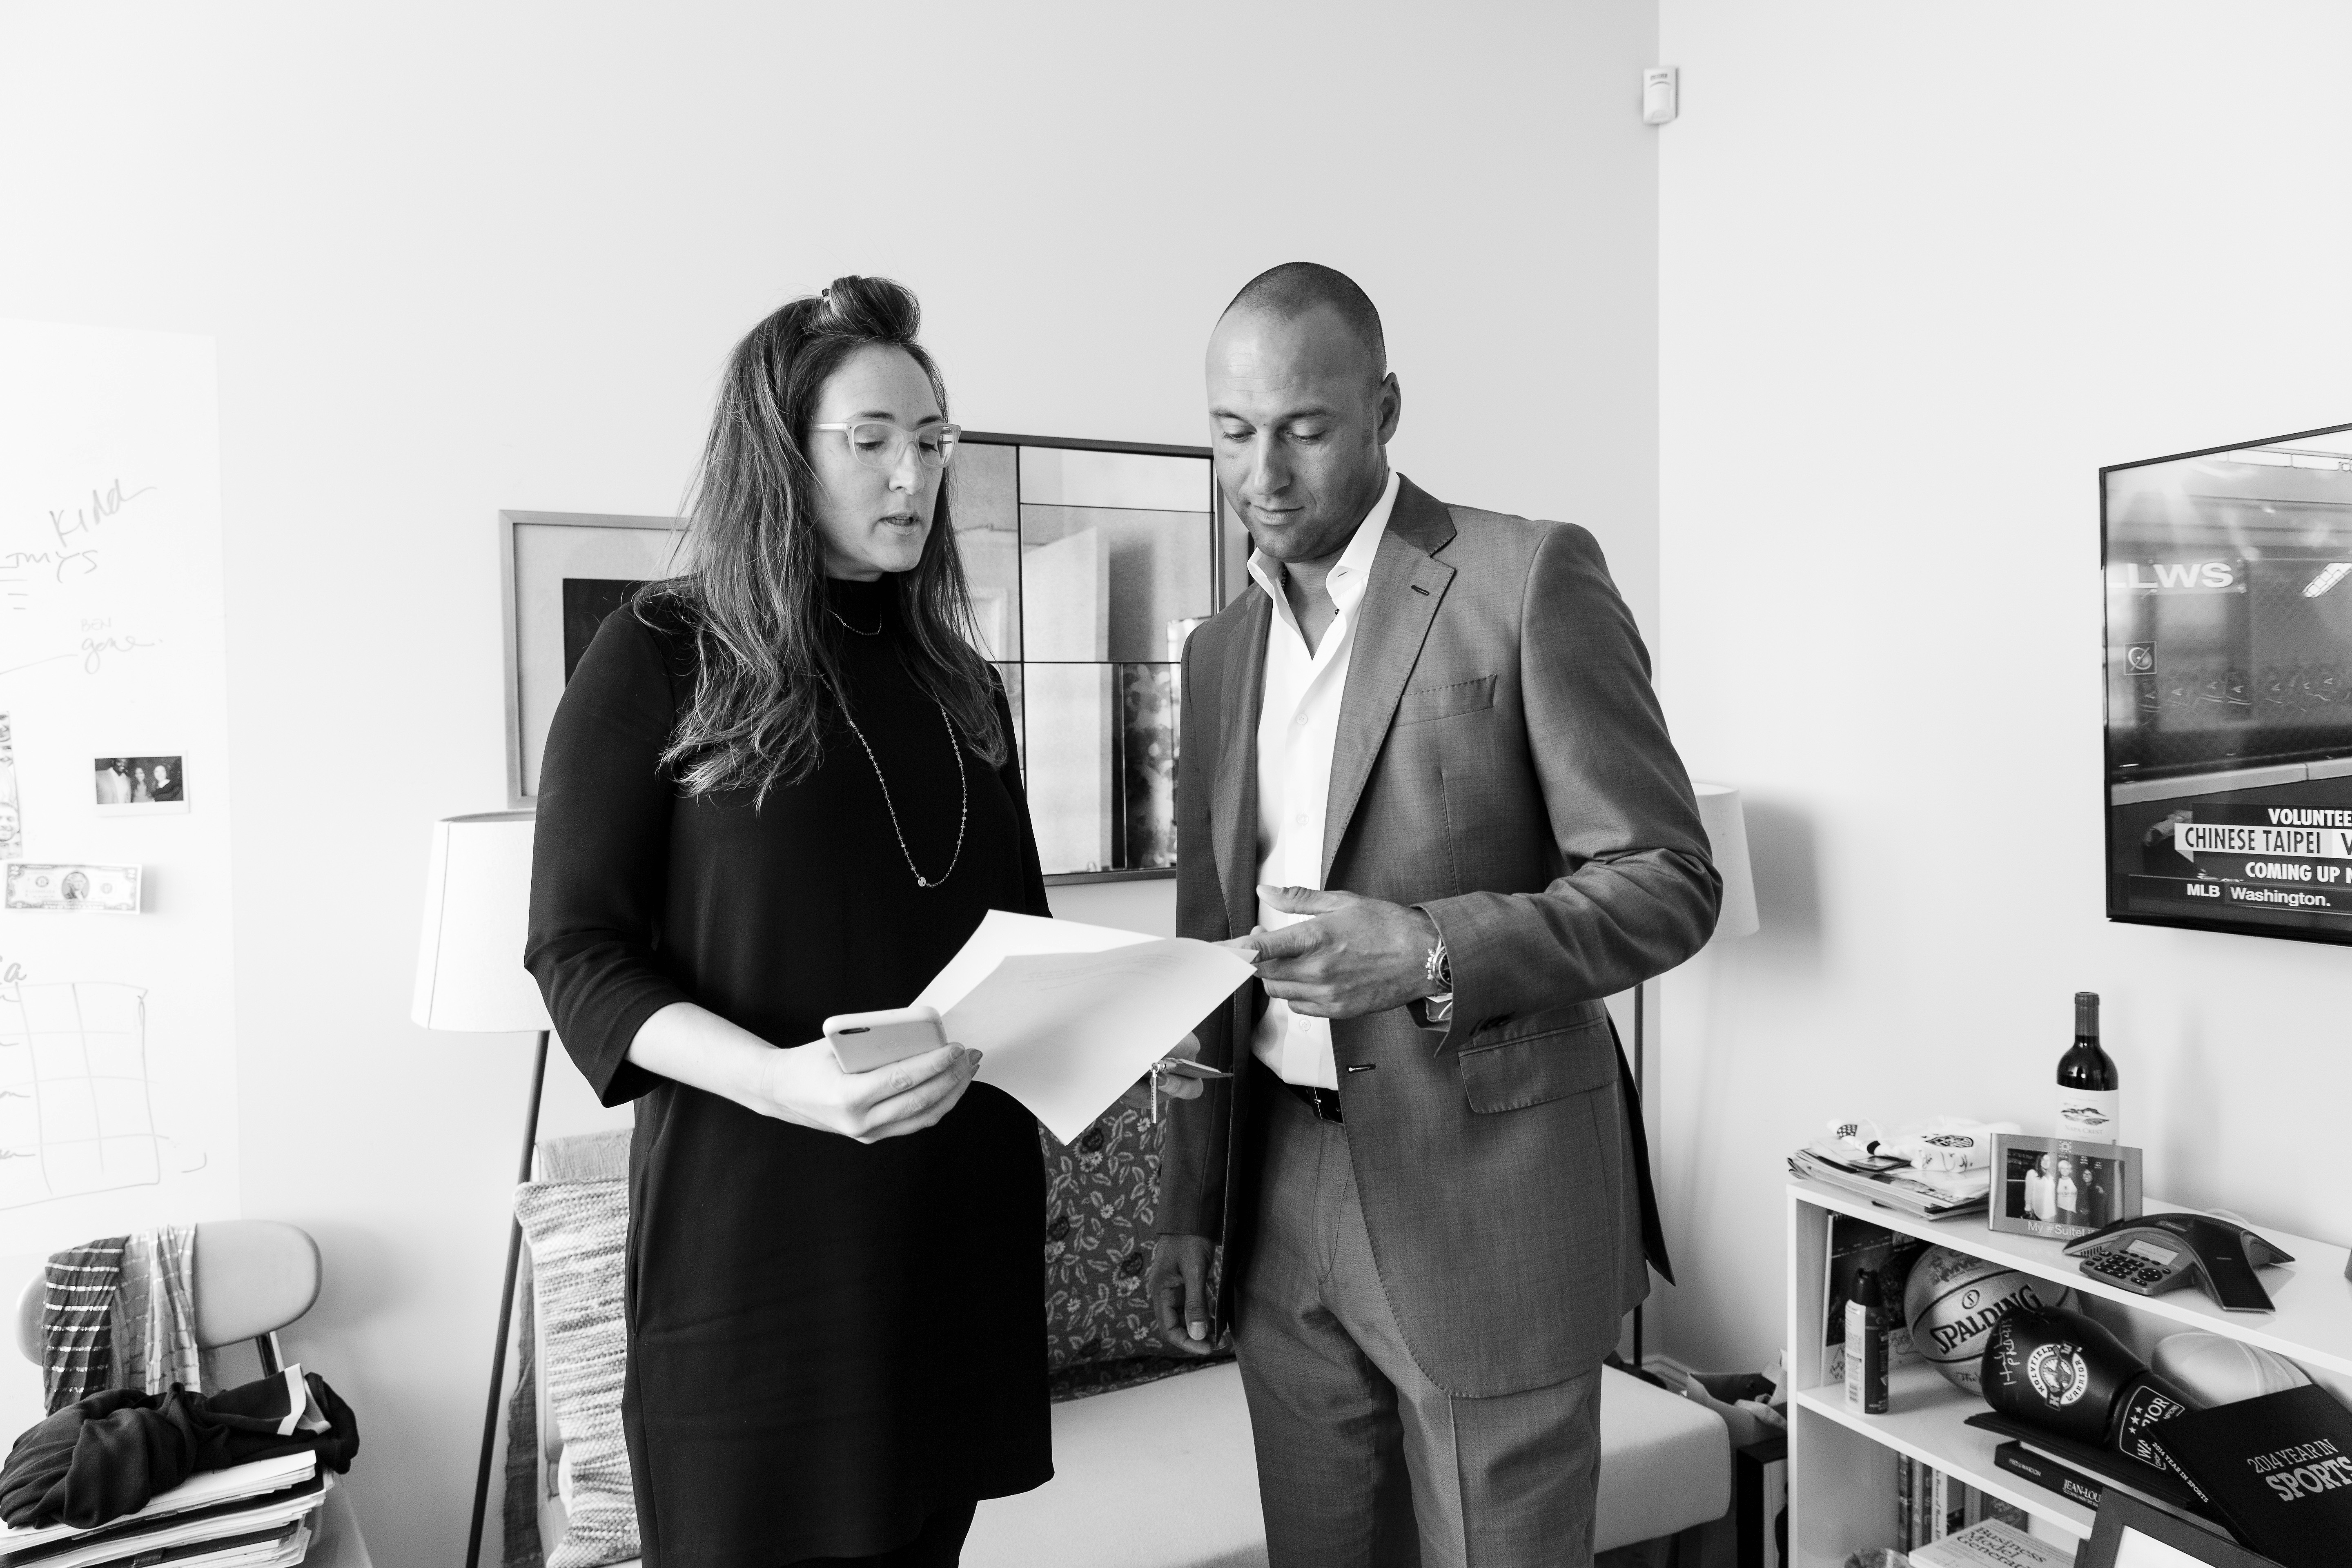 Derek Jeter meets with Jaymee Messler at the Players' Tribune office on August 24, 2015 in New York City, New York. (Photo by Steven Freeman/The Players' Tribune)